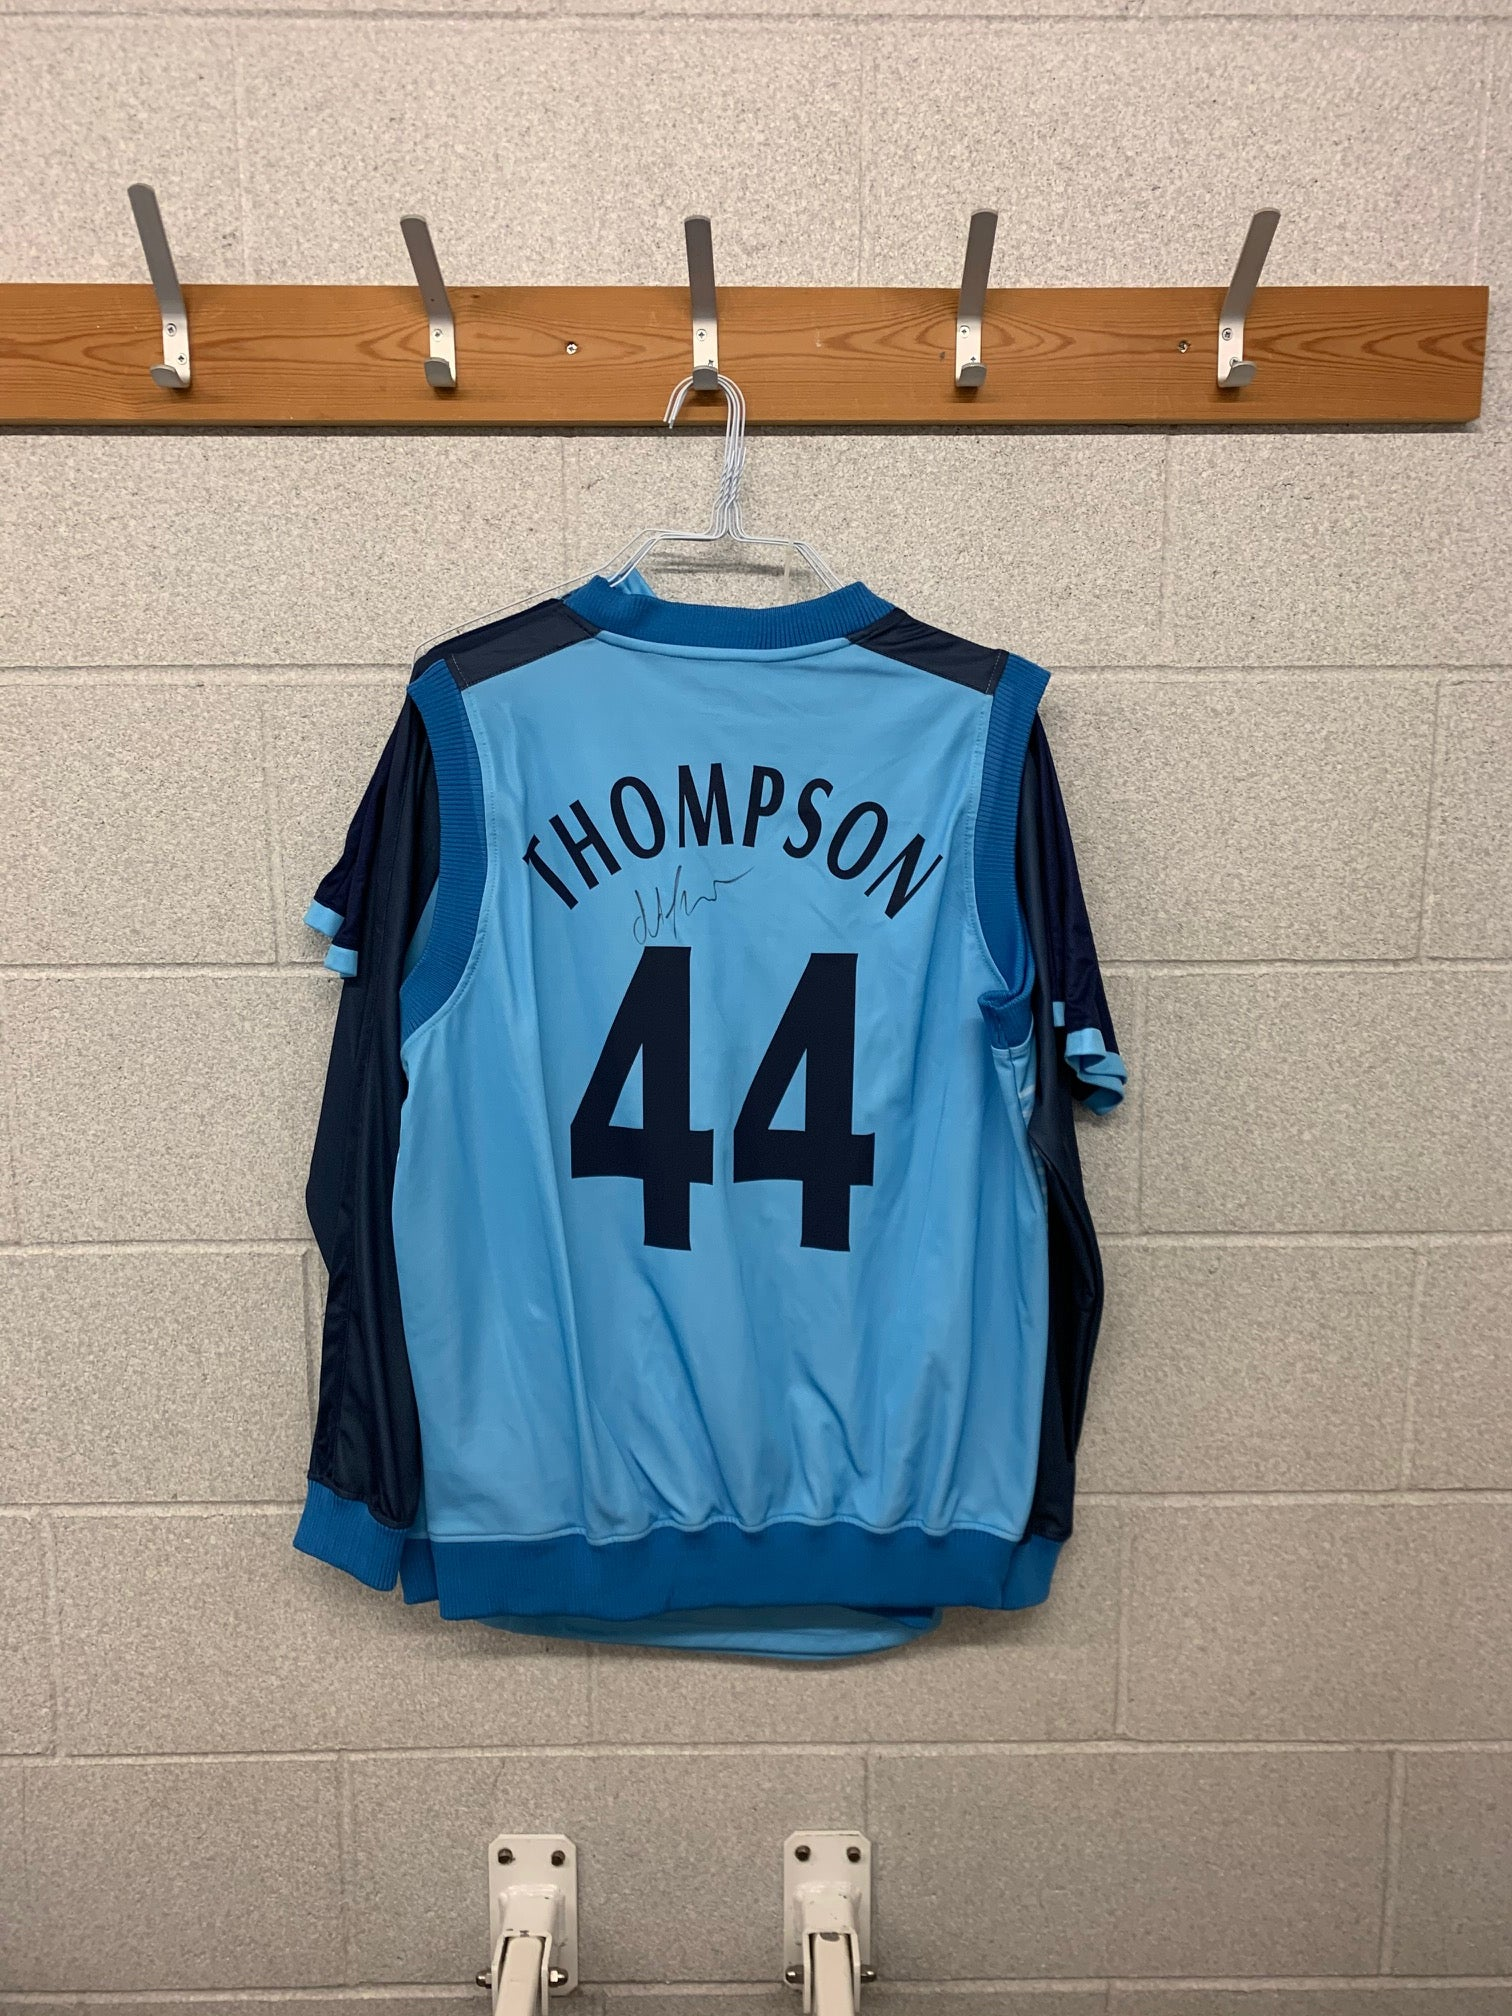 Signed Shirt/Jumper - Jordan Thompson